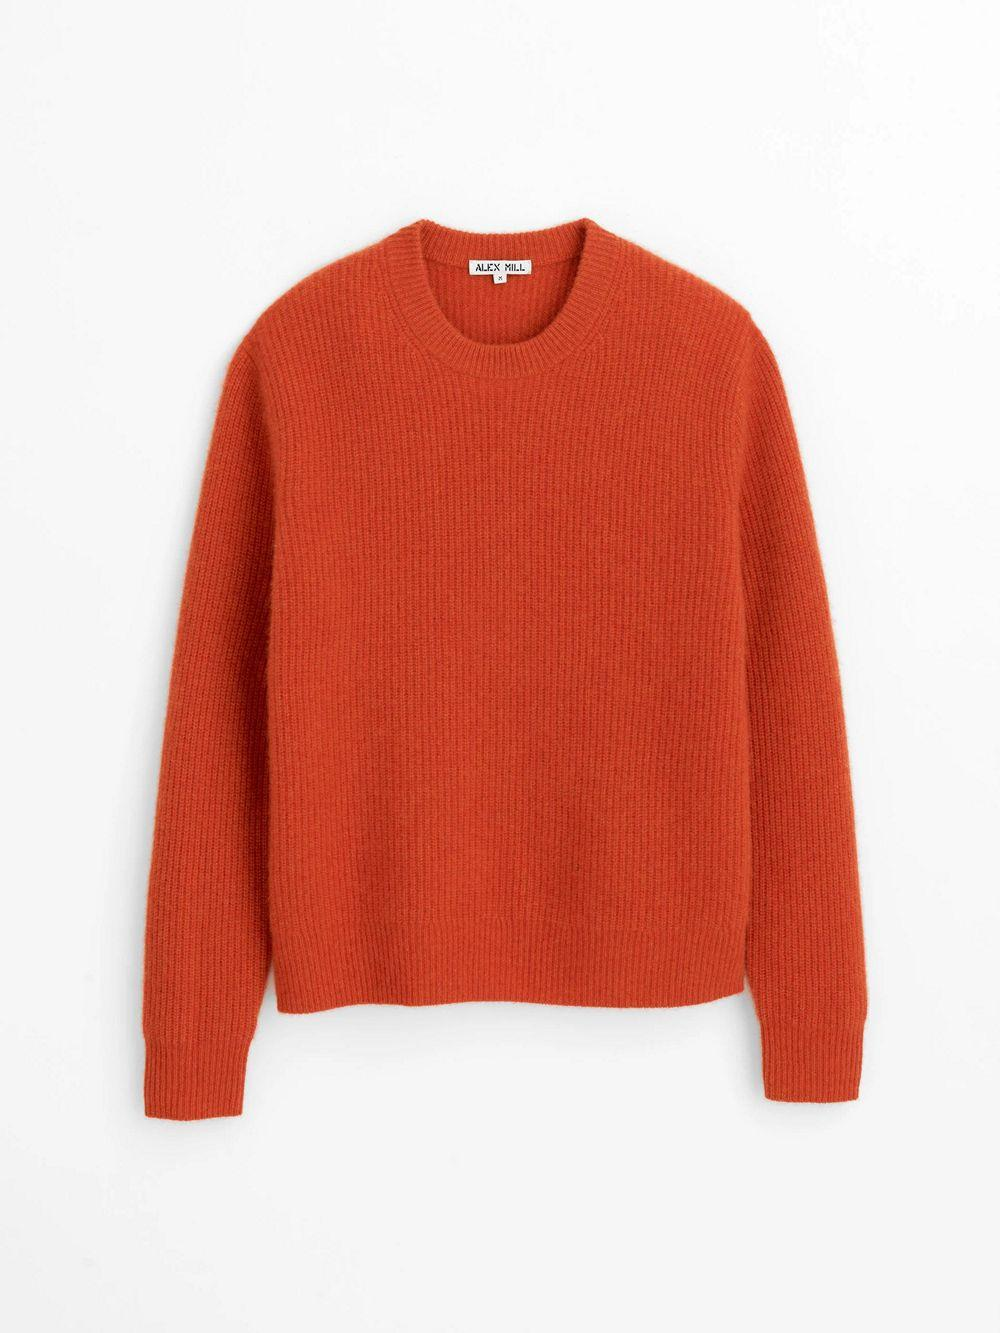 Jordan Sweater In Washed Cashmere Item # 208-MW018-1380